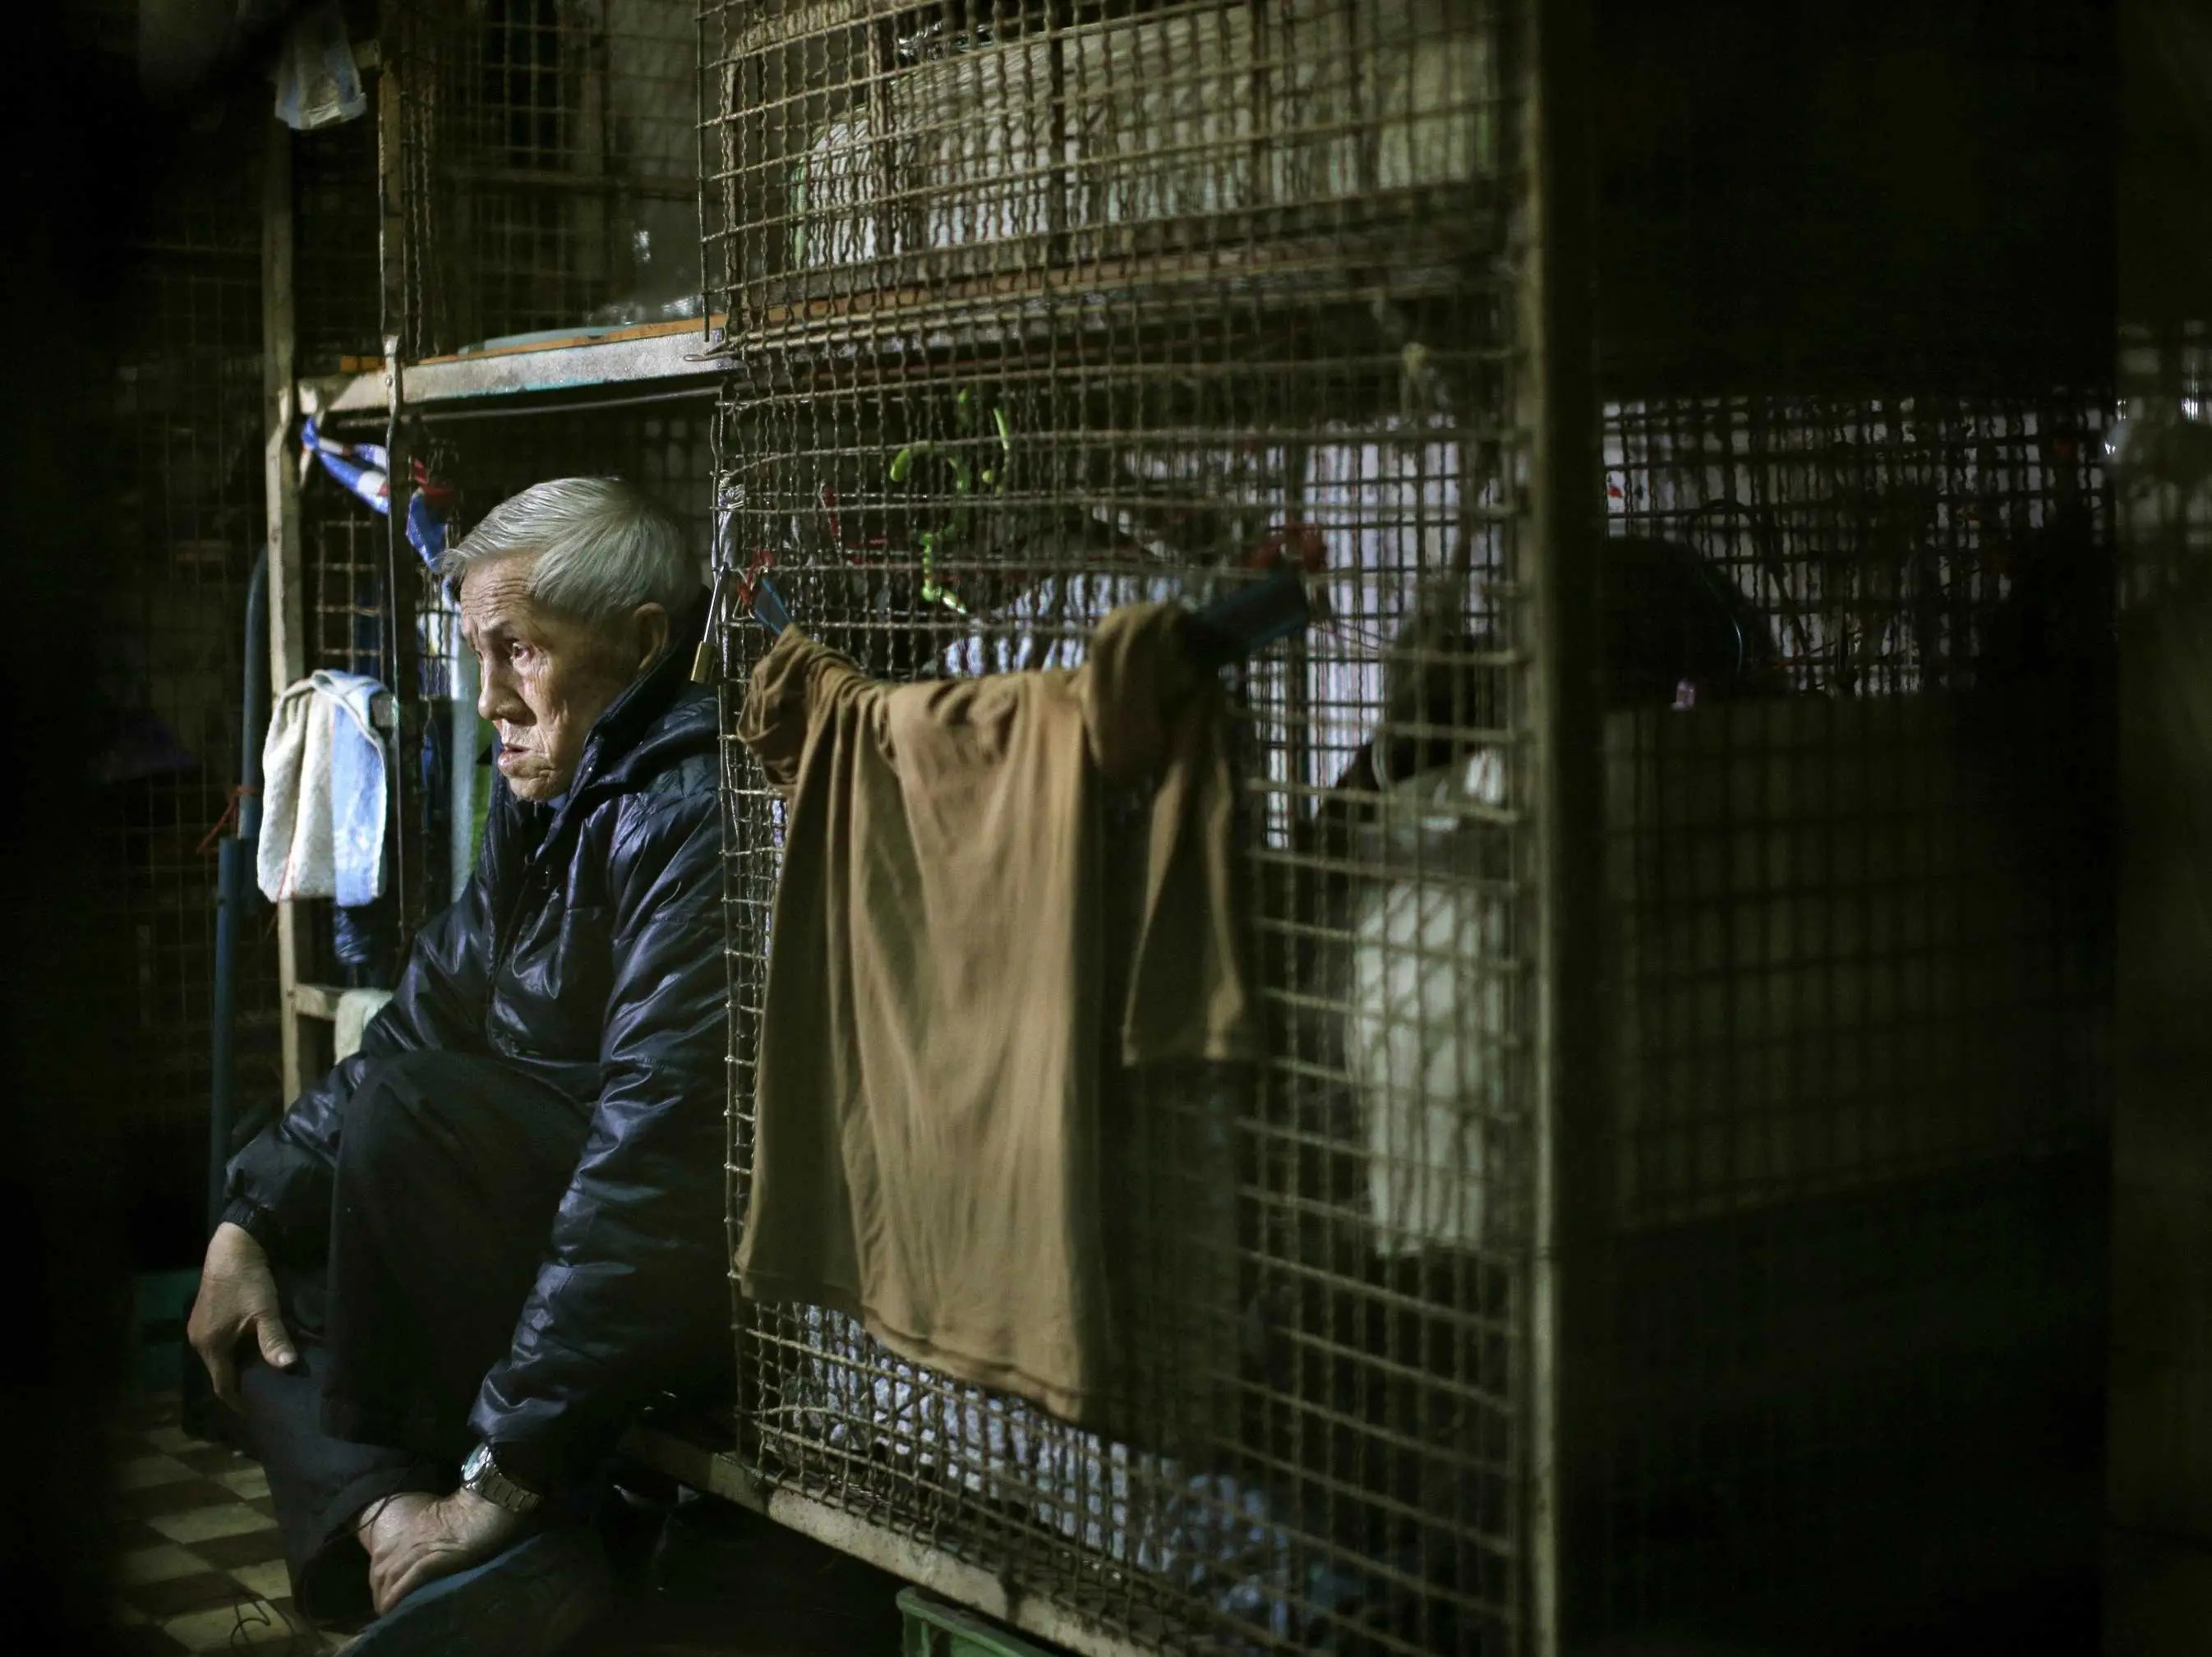 hong kong rich live in mansions and poor cages business